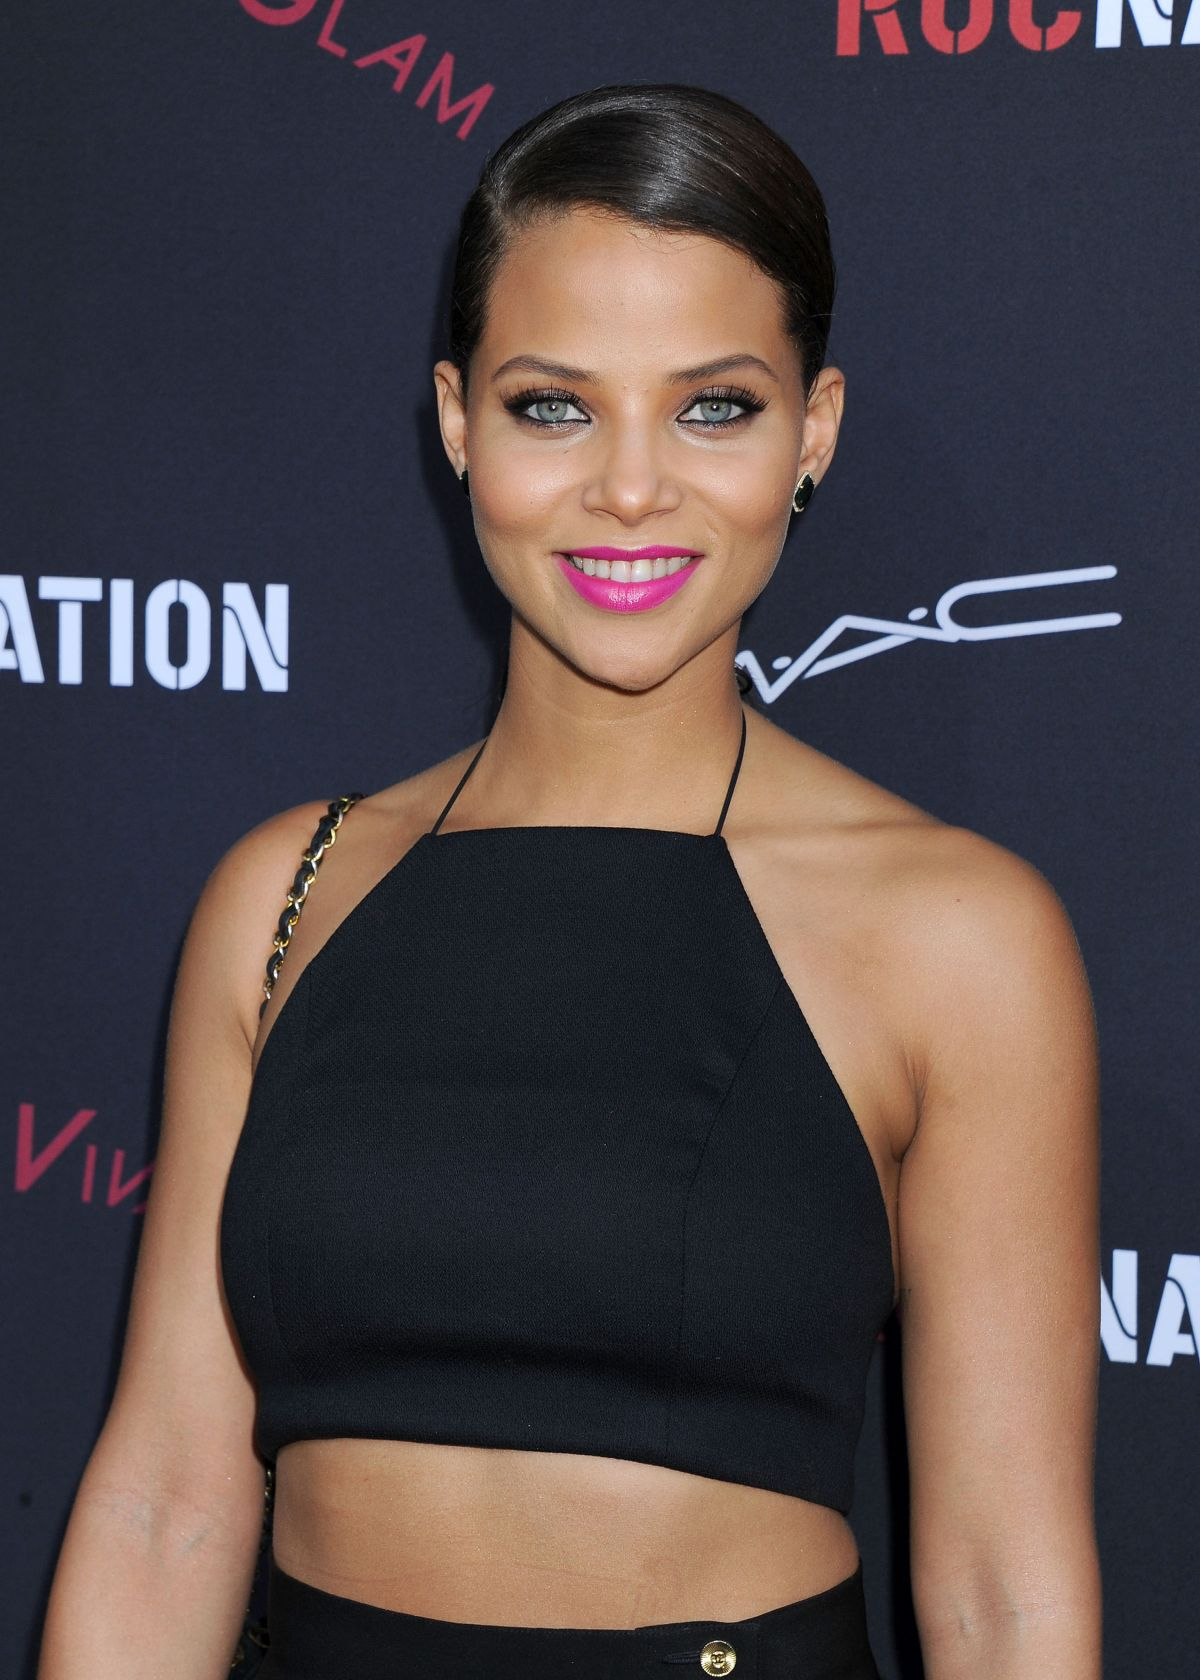 DENISE VASI at 2014 Roc Nation Pre-Grammy Brunch in Beverly Hills